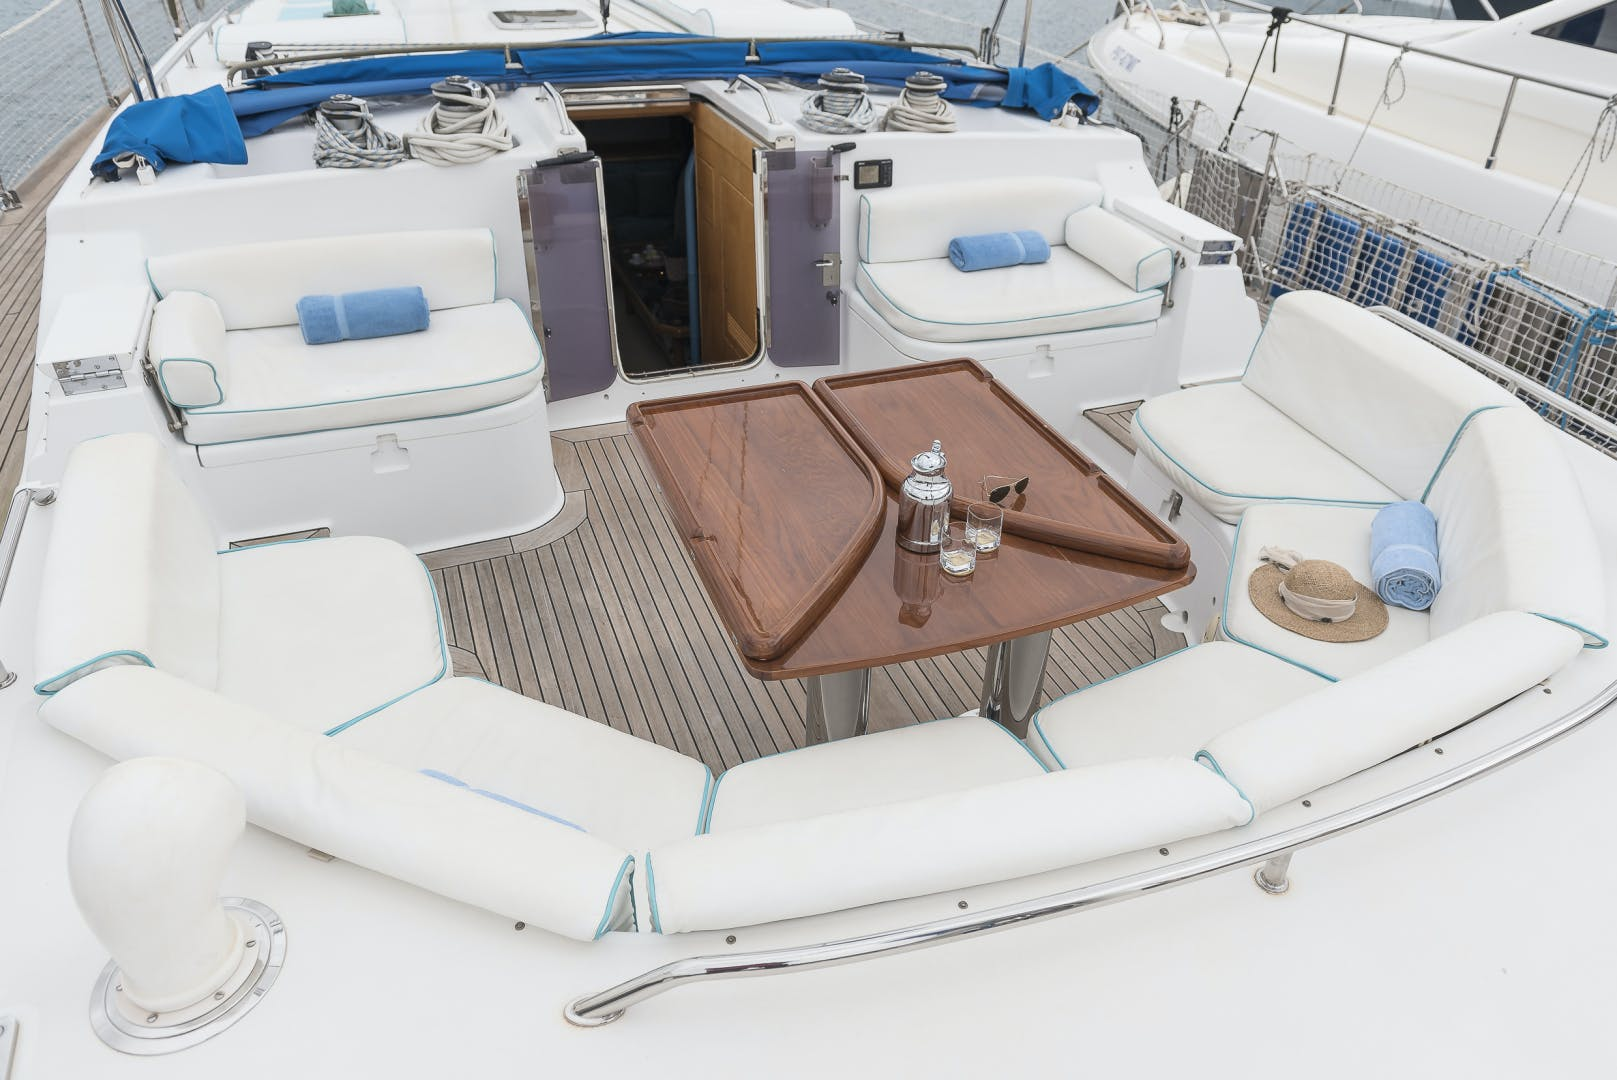 1992 Other 84' Southampton Yacht Services - Tony Castro Rocio | Picture 5 of 19